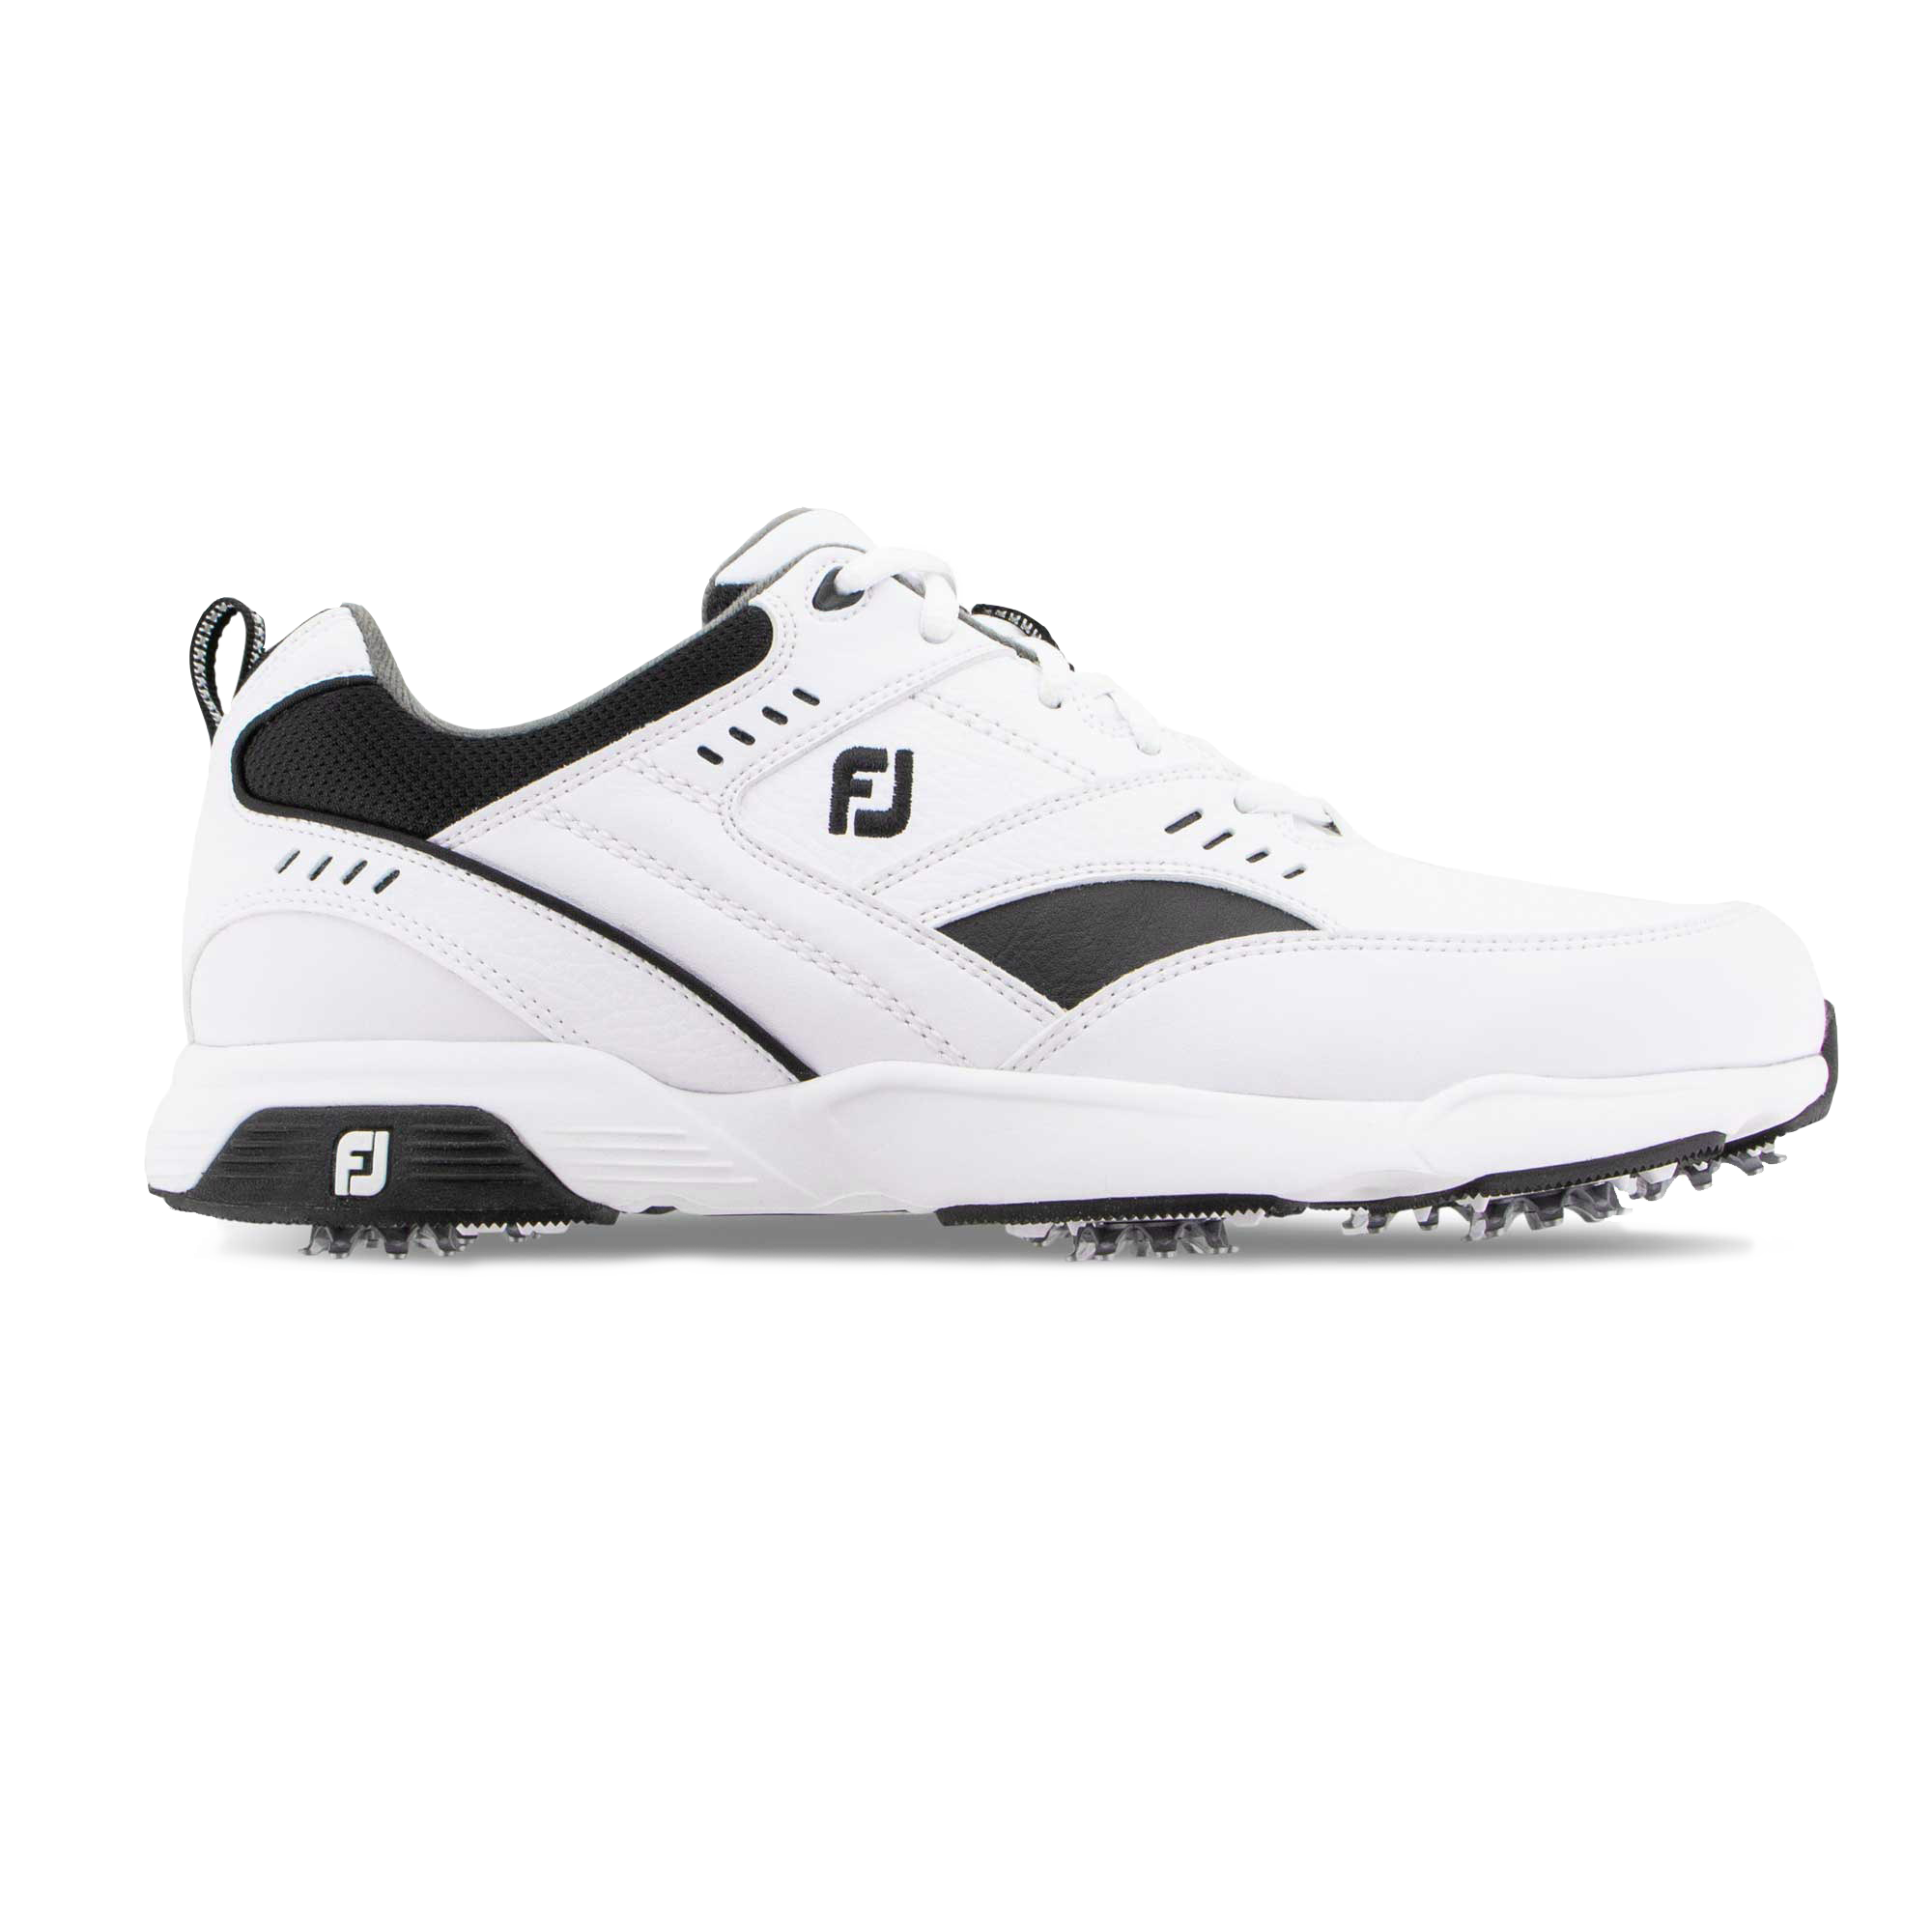 Men's Extra Wide Golf Shoes | The #1